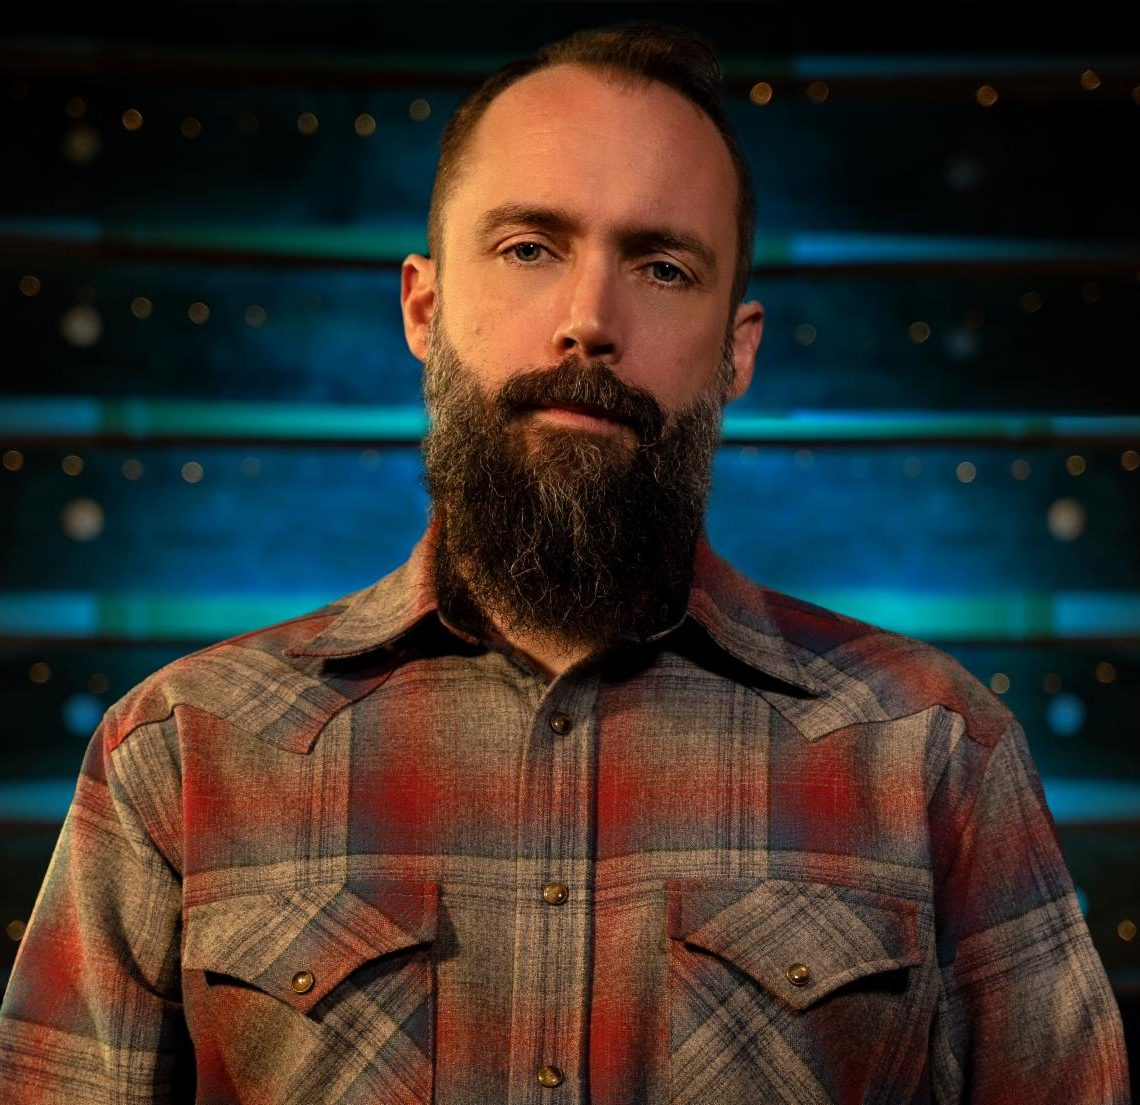 CLUTCH's Neil Fallon launches rock 'n roll charity auction to benefit Innocent Lives Foundation